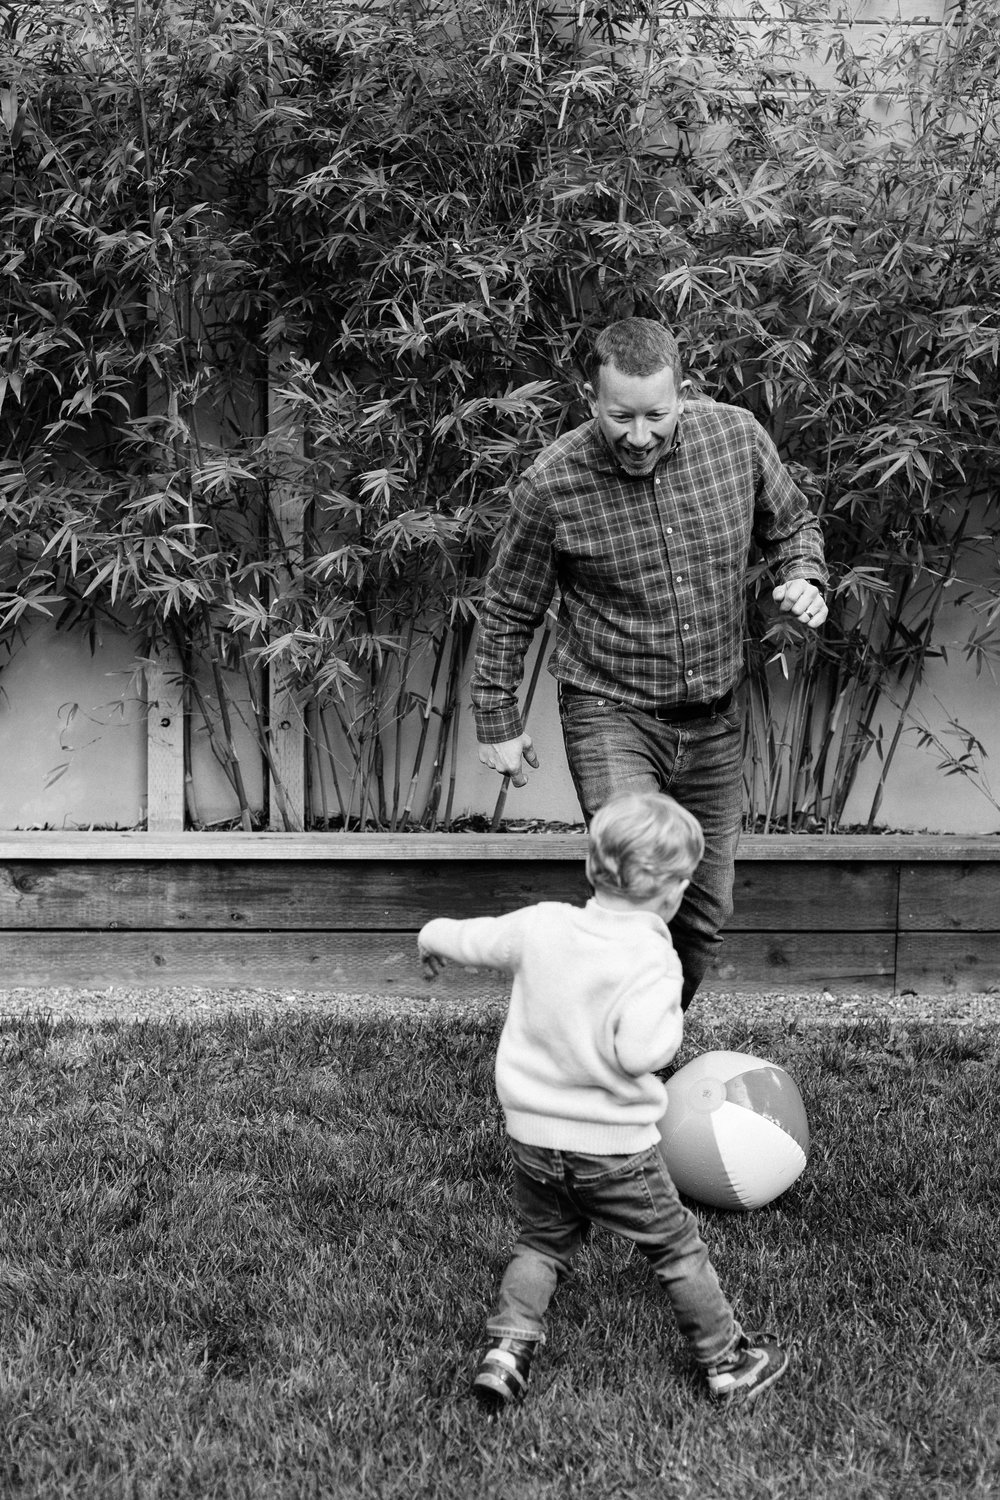 menlo park dad and son playing ball